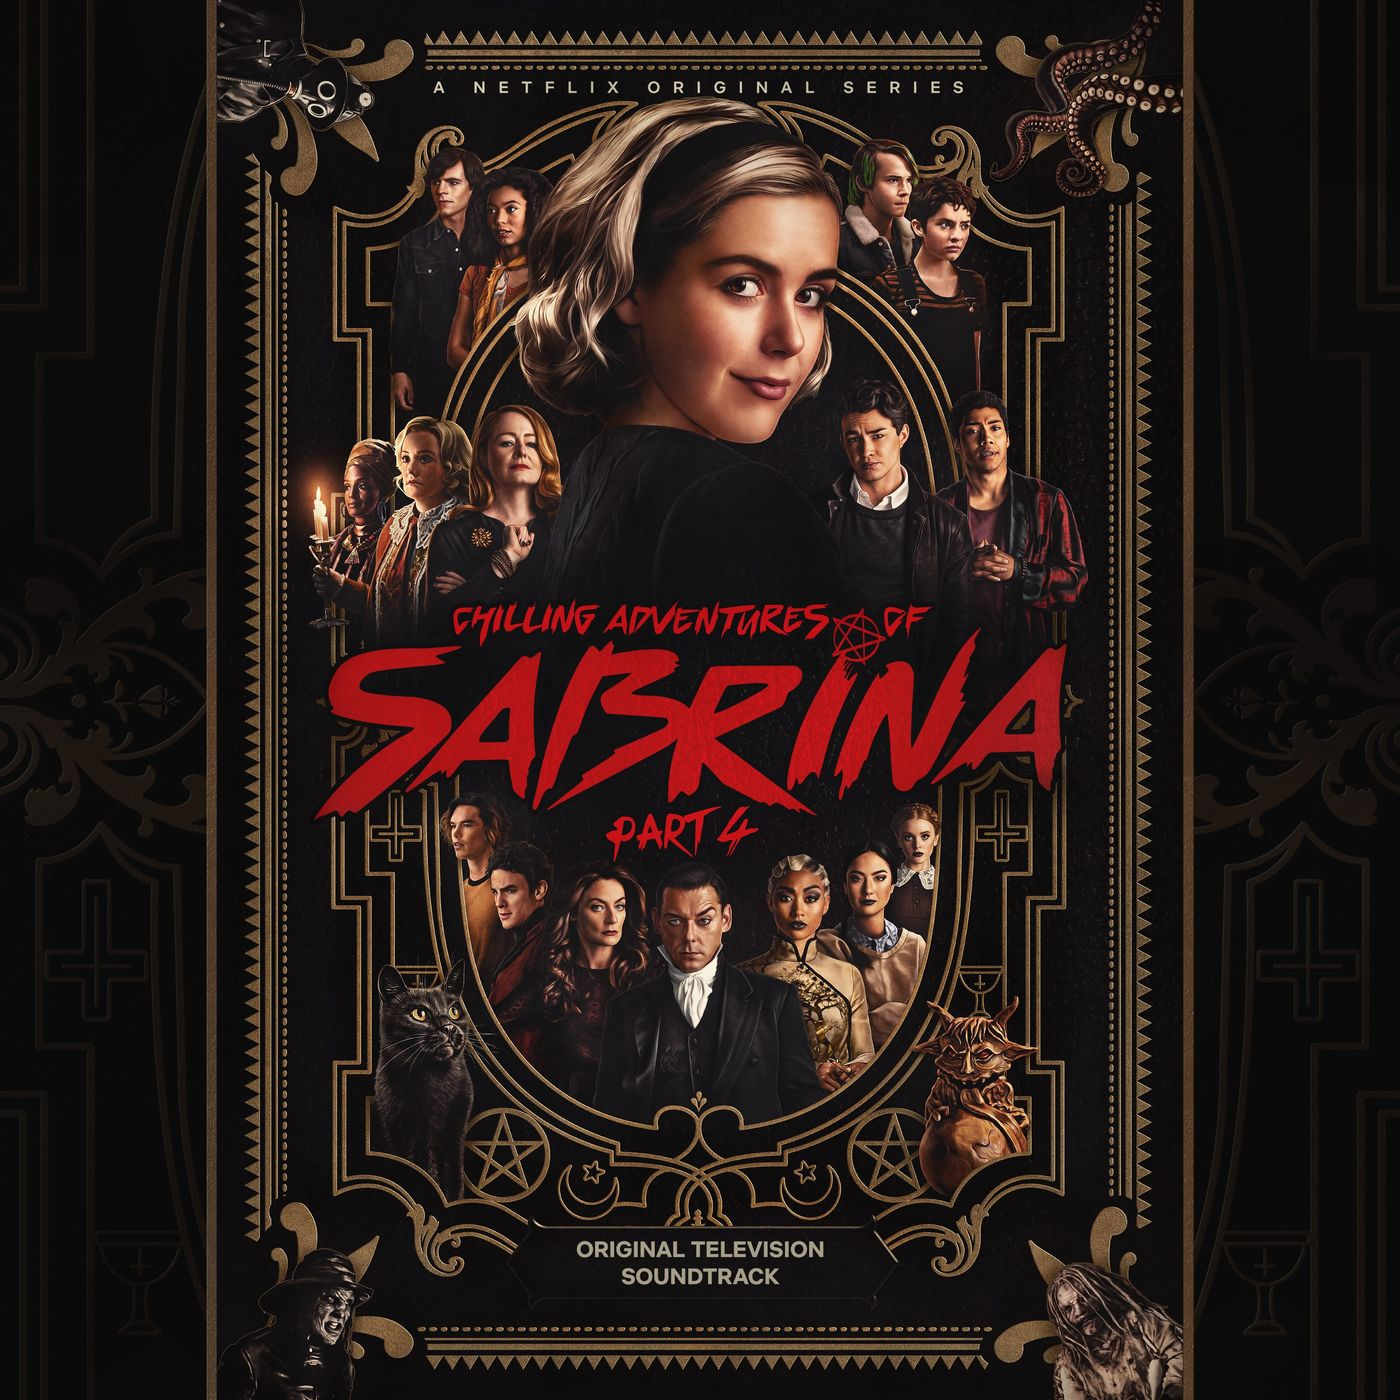 Cast of Chilling Adventures of Sabrina, Gavin Leatherwood, Mellany Barros, Tyler Cotton - Tomorrow Belongs to Me (feat. Gavin Leatherwood, Tyler Cotton & Mellany Barros)